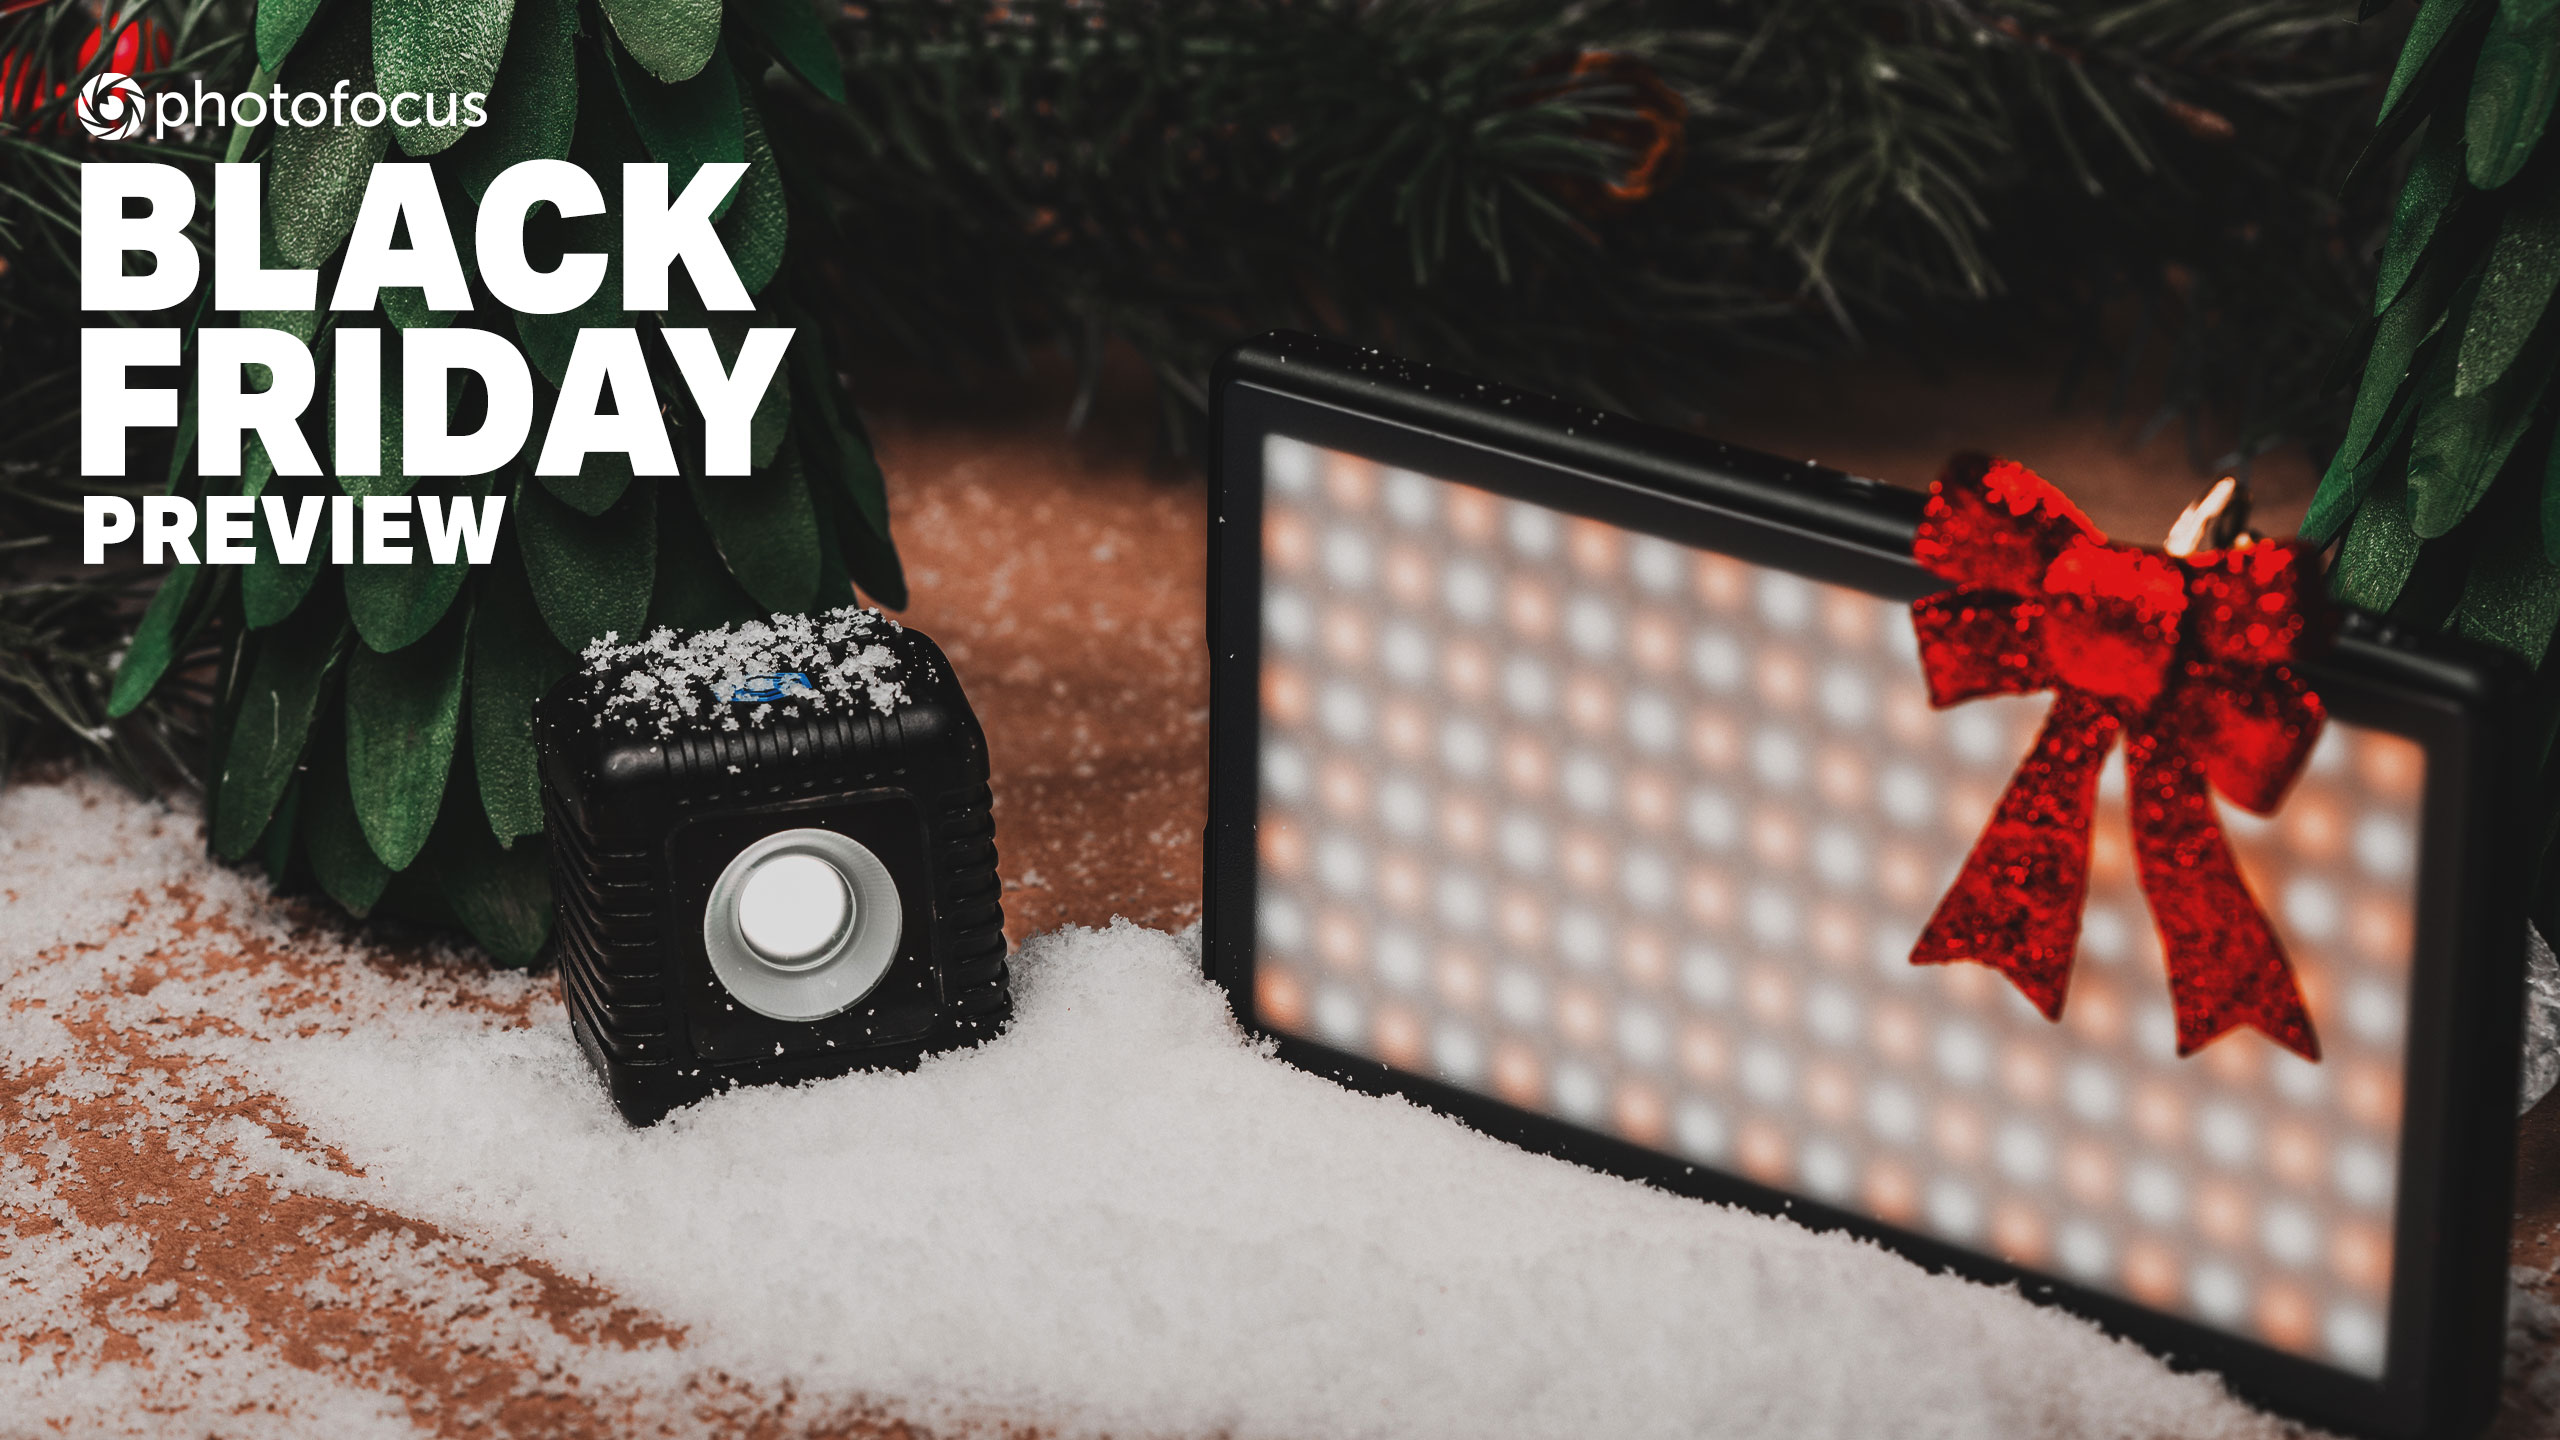 Lume Cube offers huge site-wide Black Friday savings